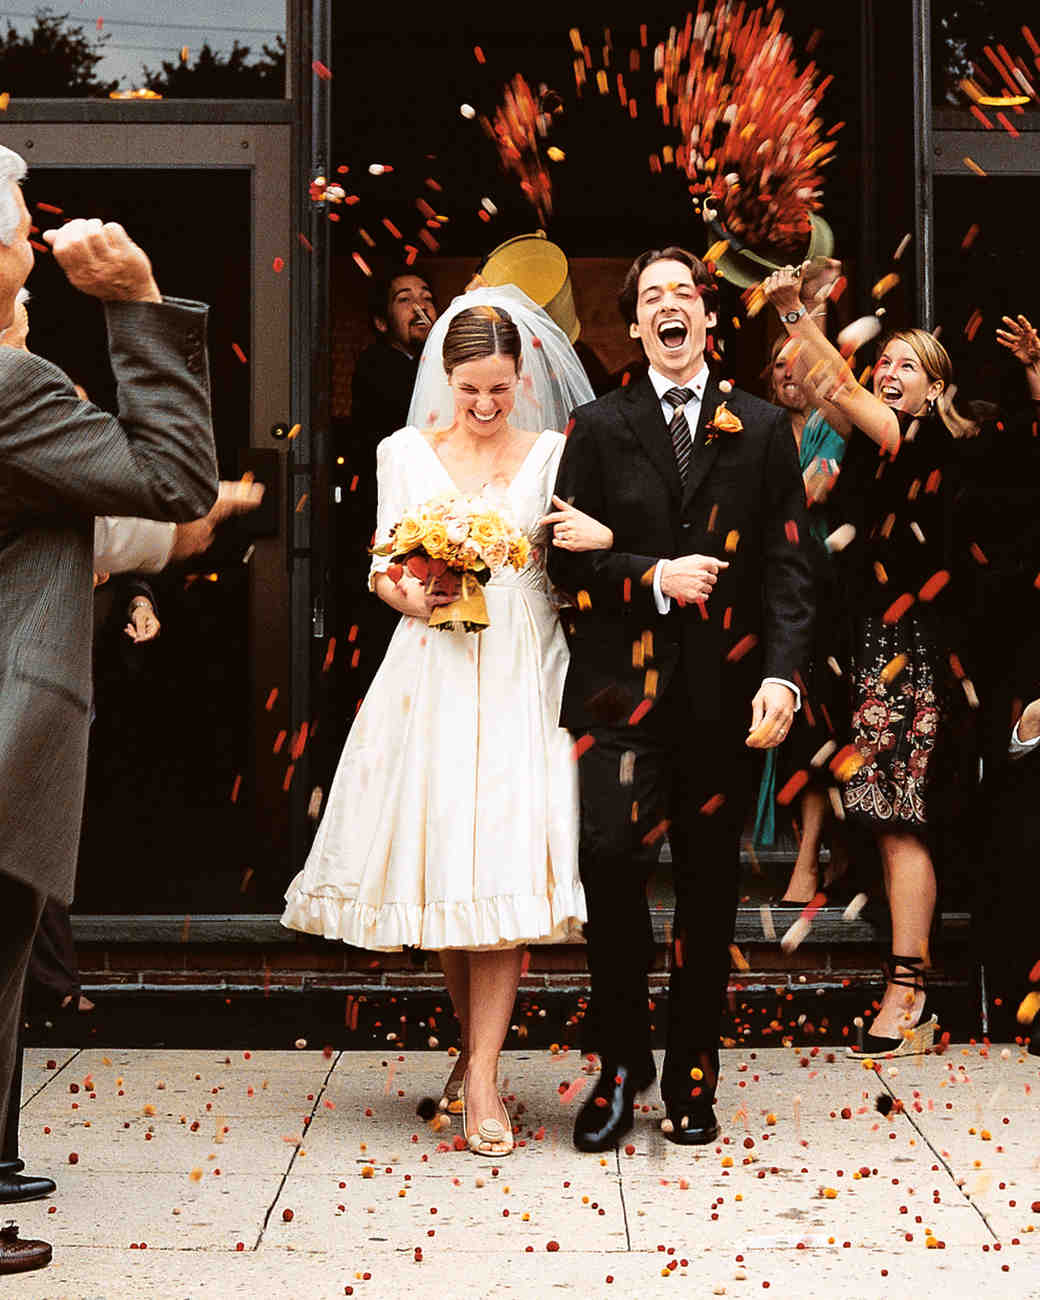 toss-bride-groom-mmwa102704.jpg